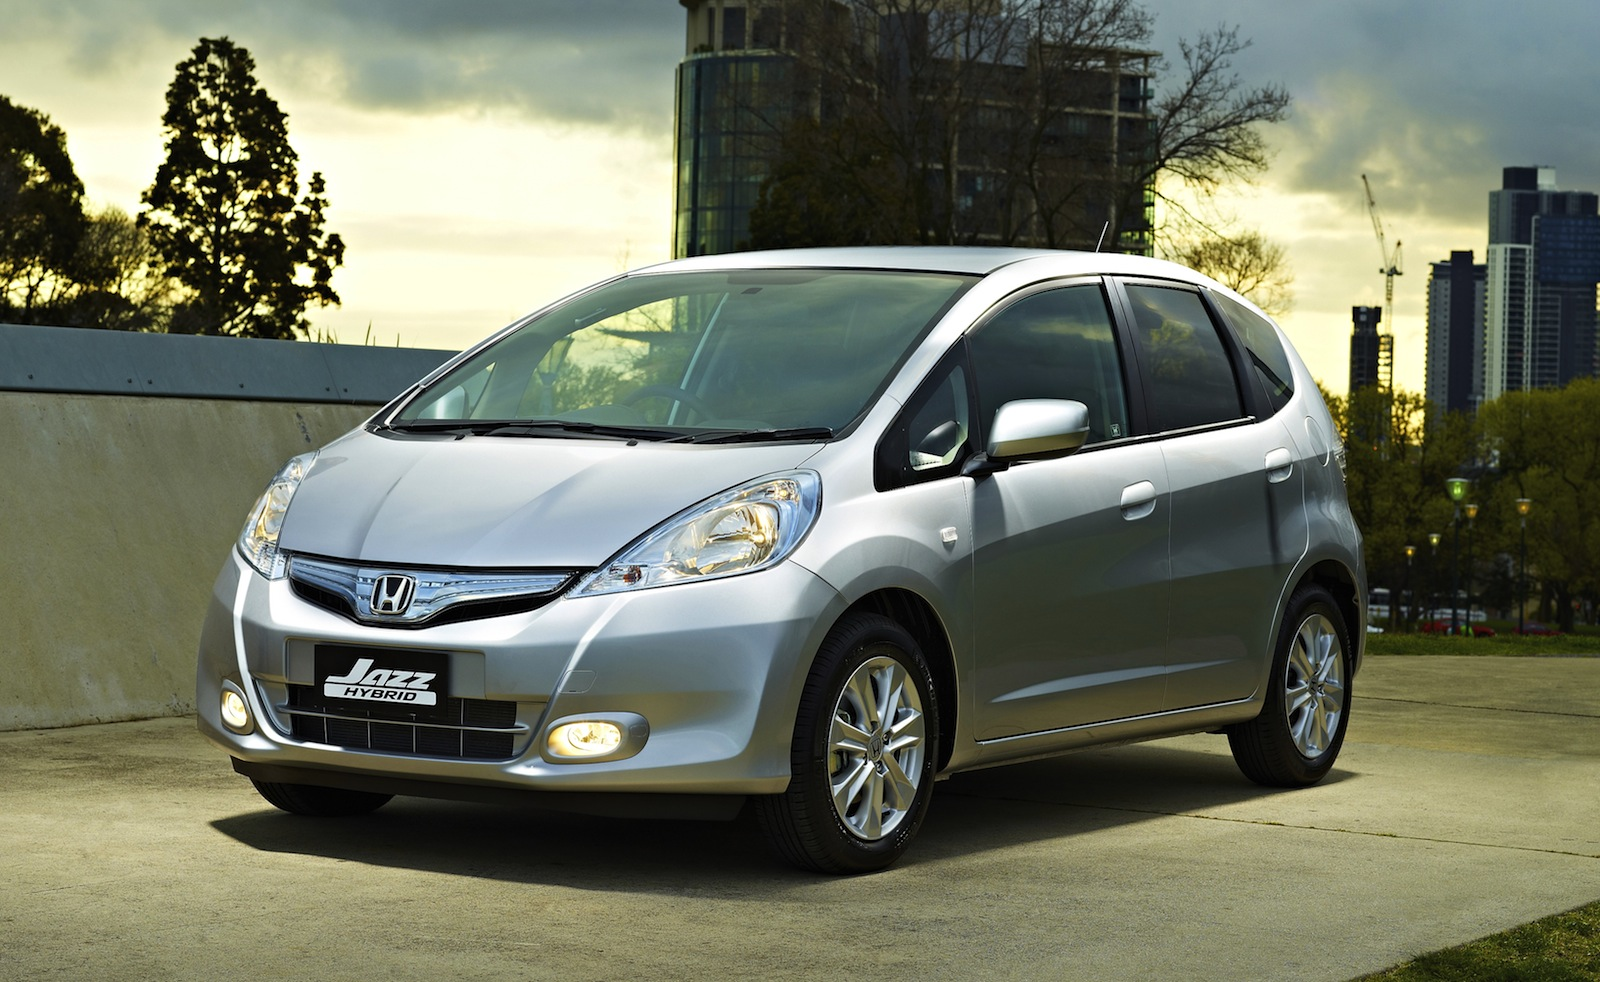 honda jazz hybrid launches at 22 990 photos 1 of 3. Black Bedroom Furniture Sets. Home Design Ideas